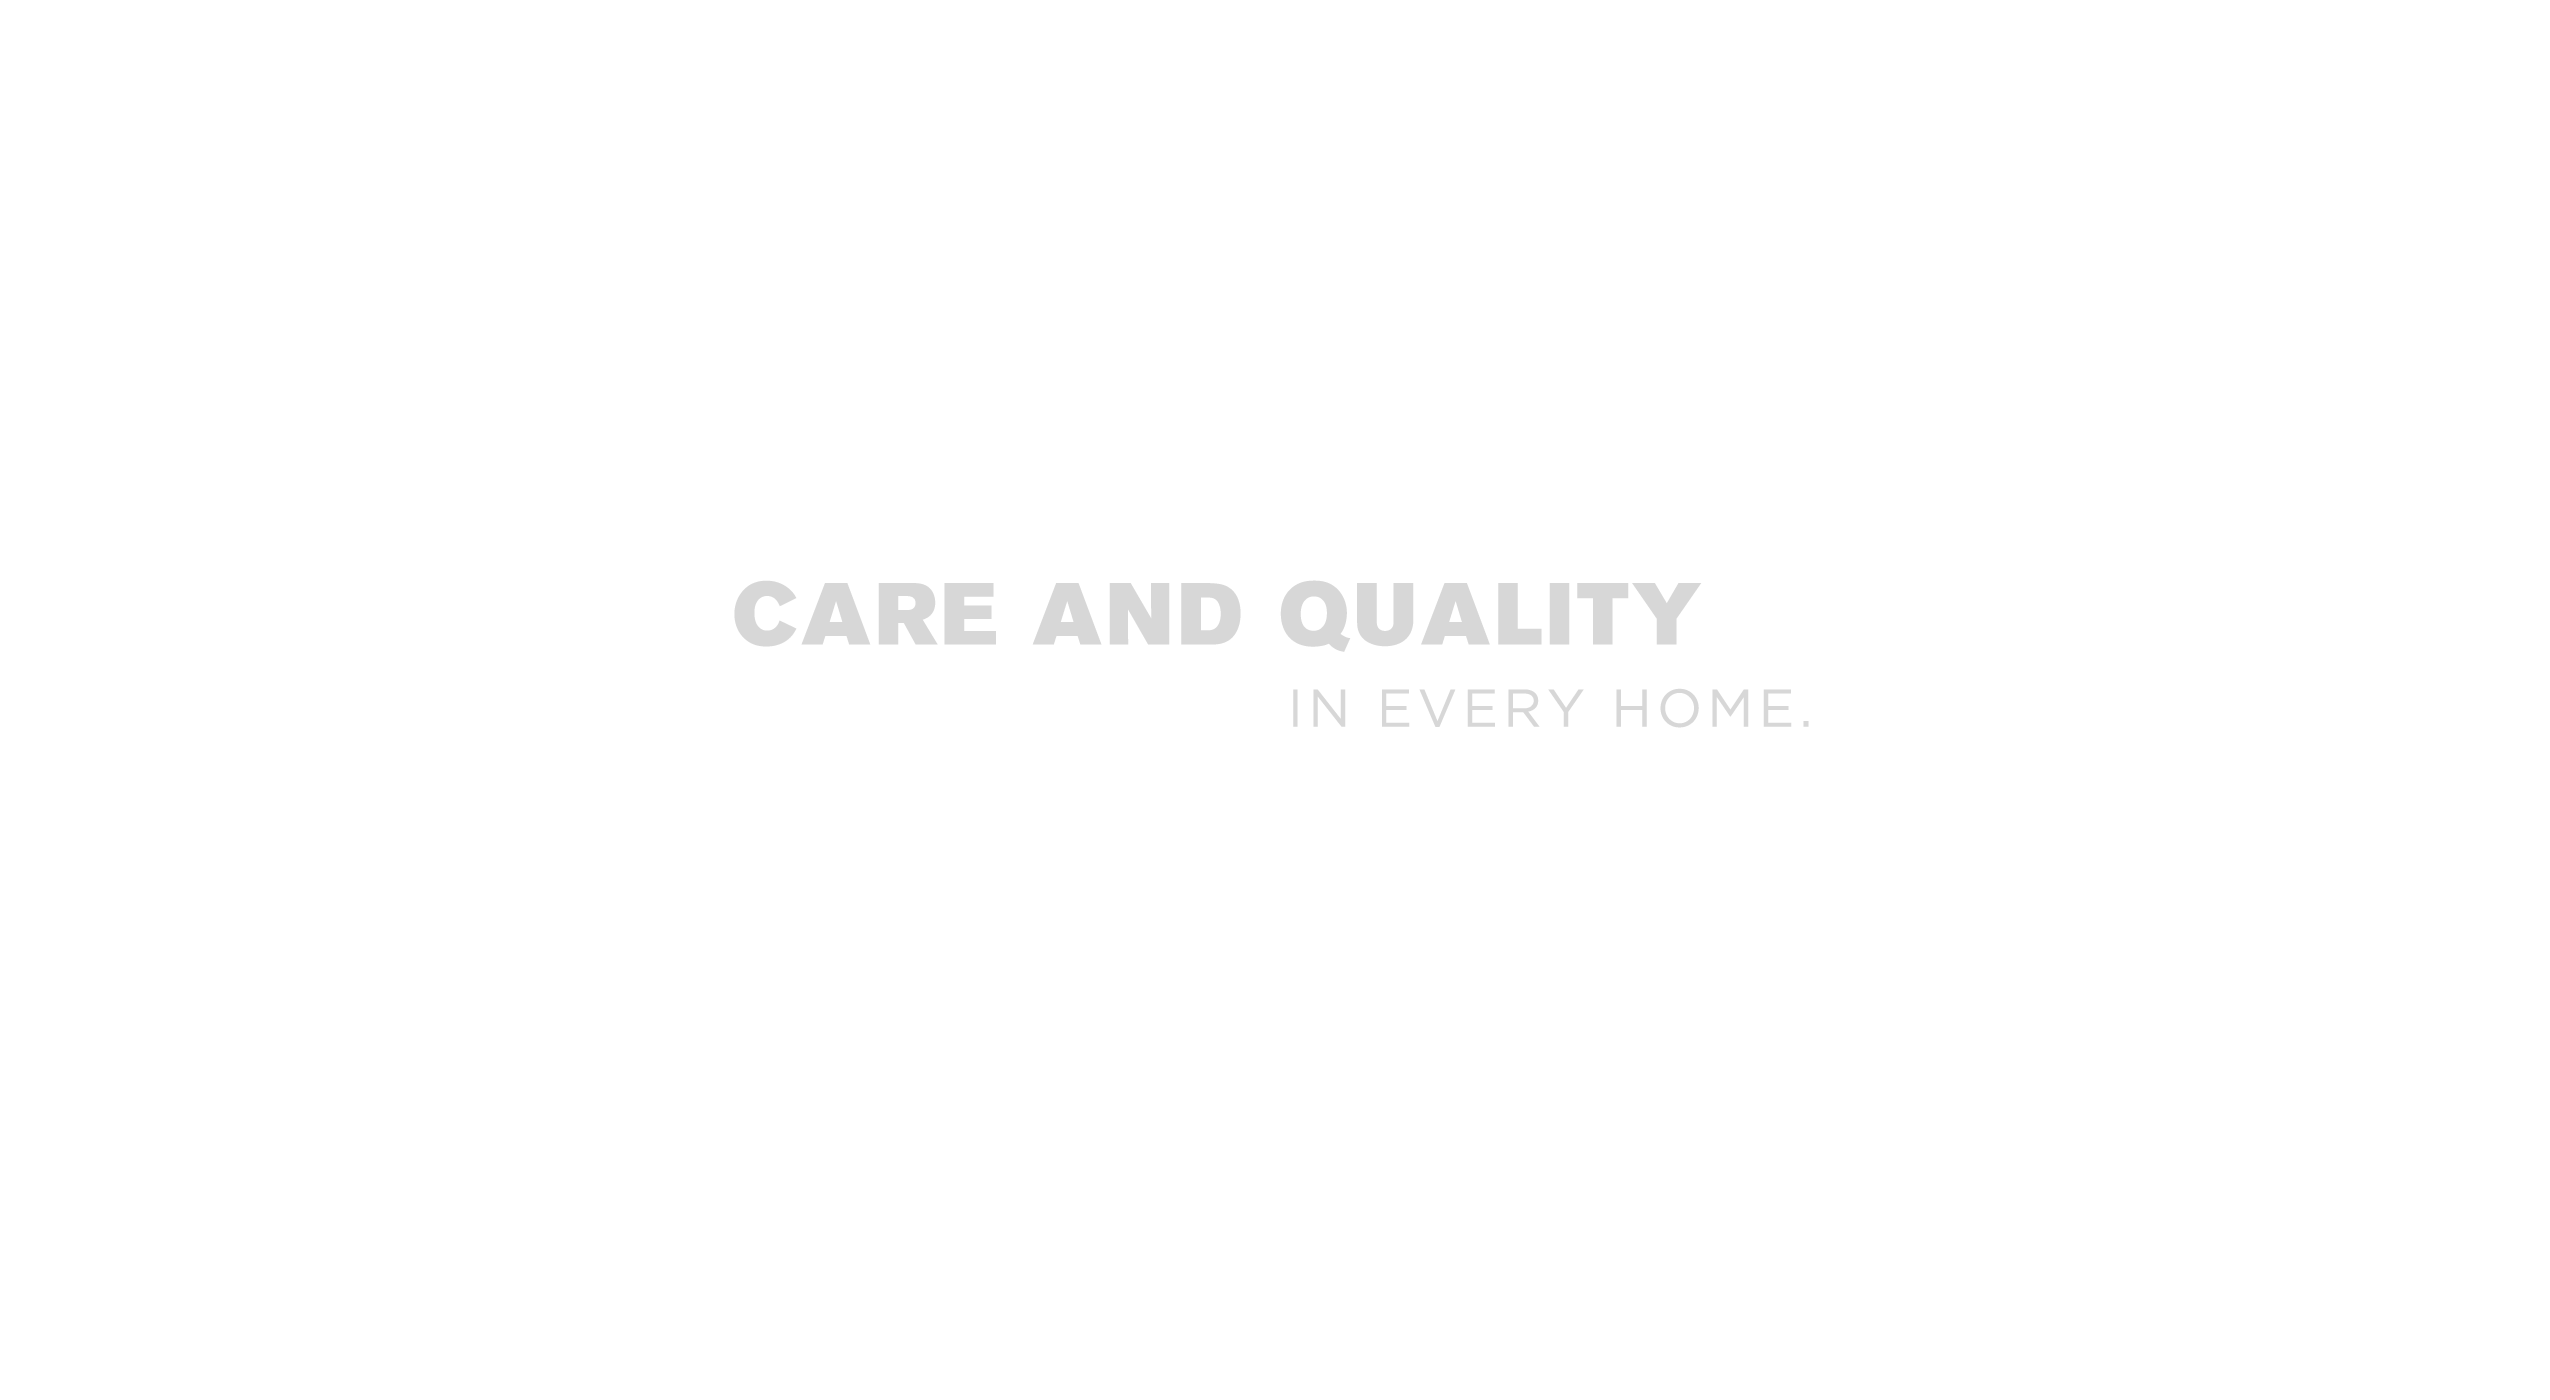 Care and Quality in every home.